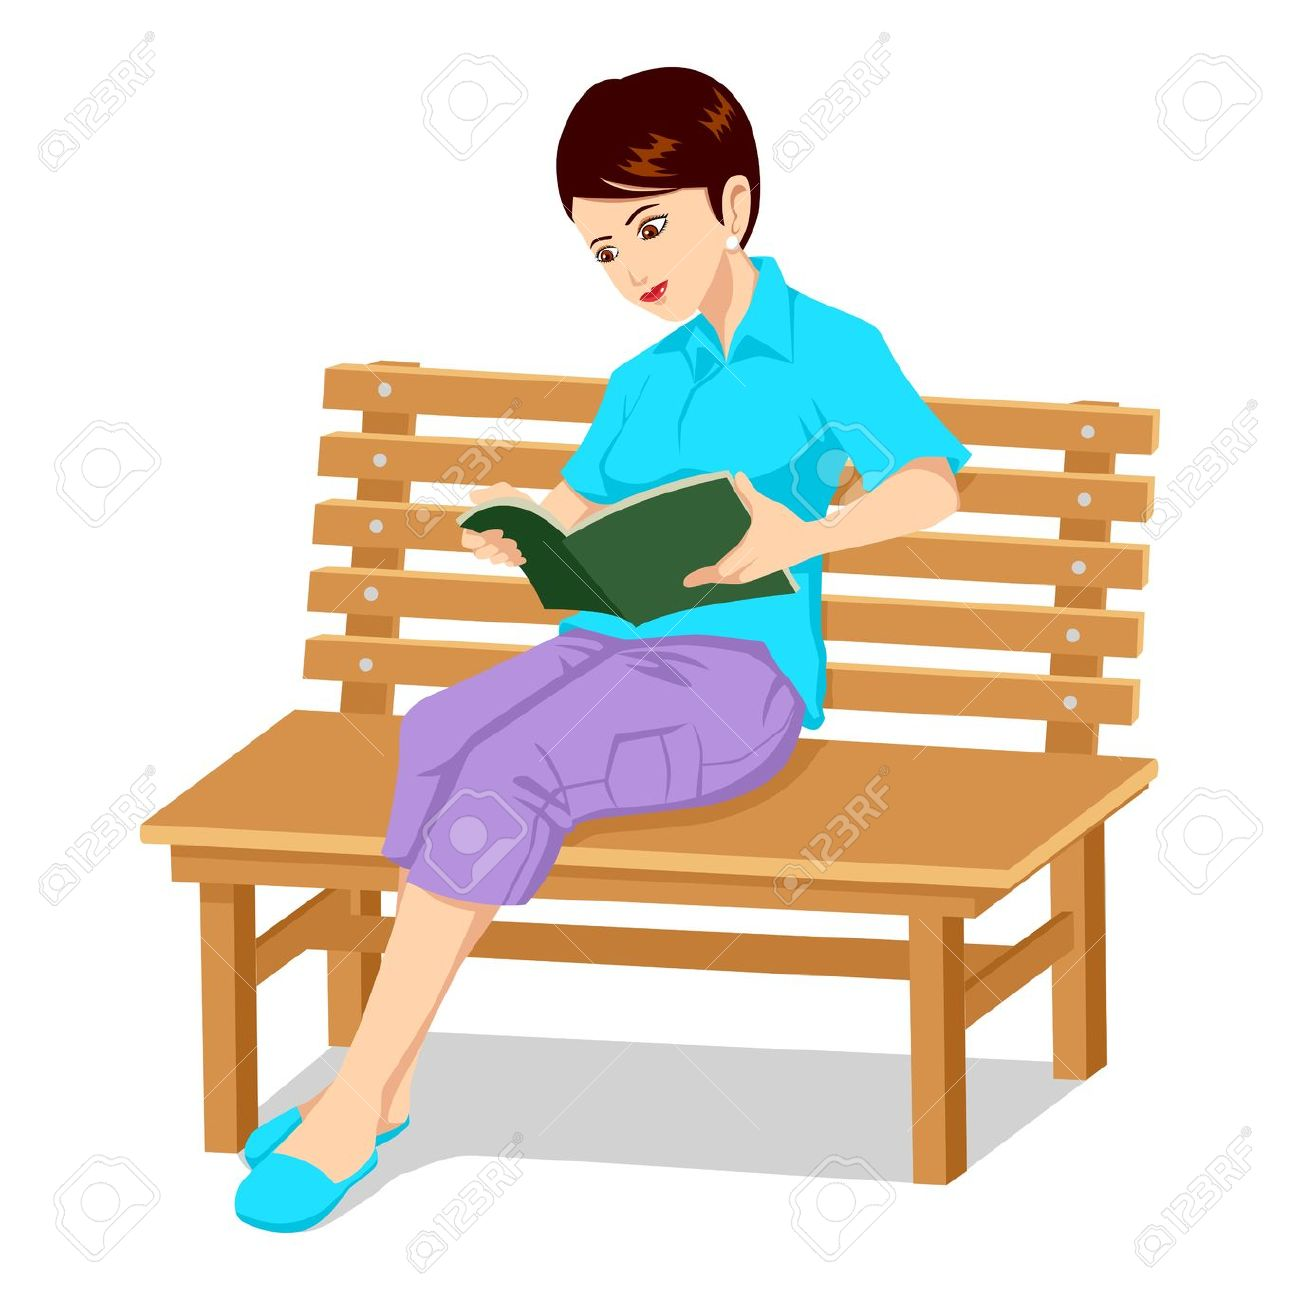 Sitting on bench clipart.